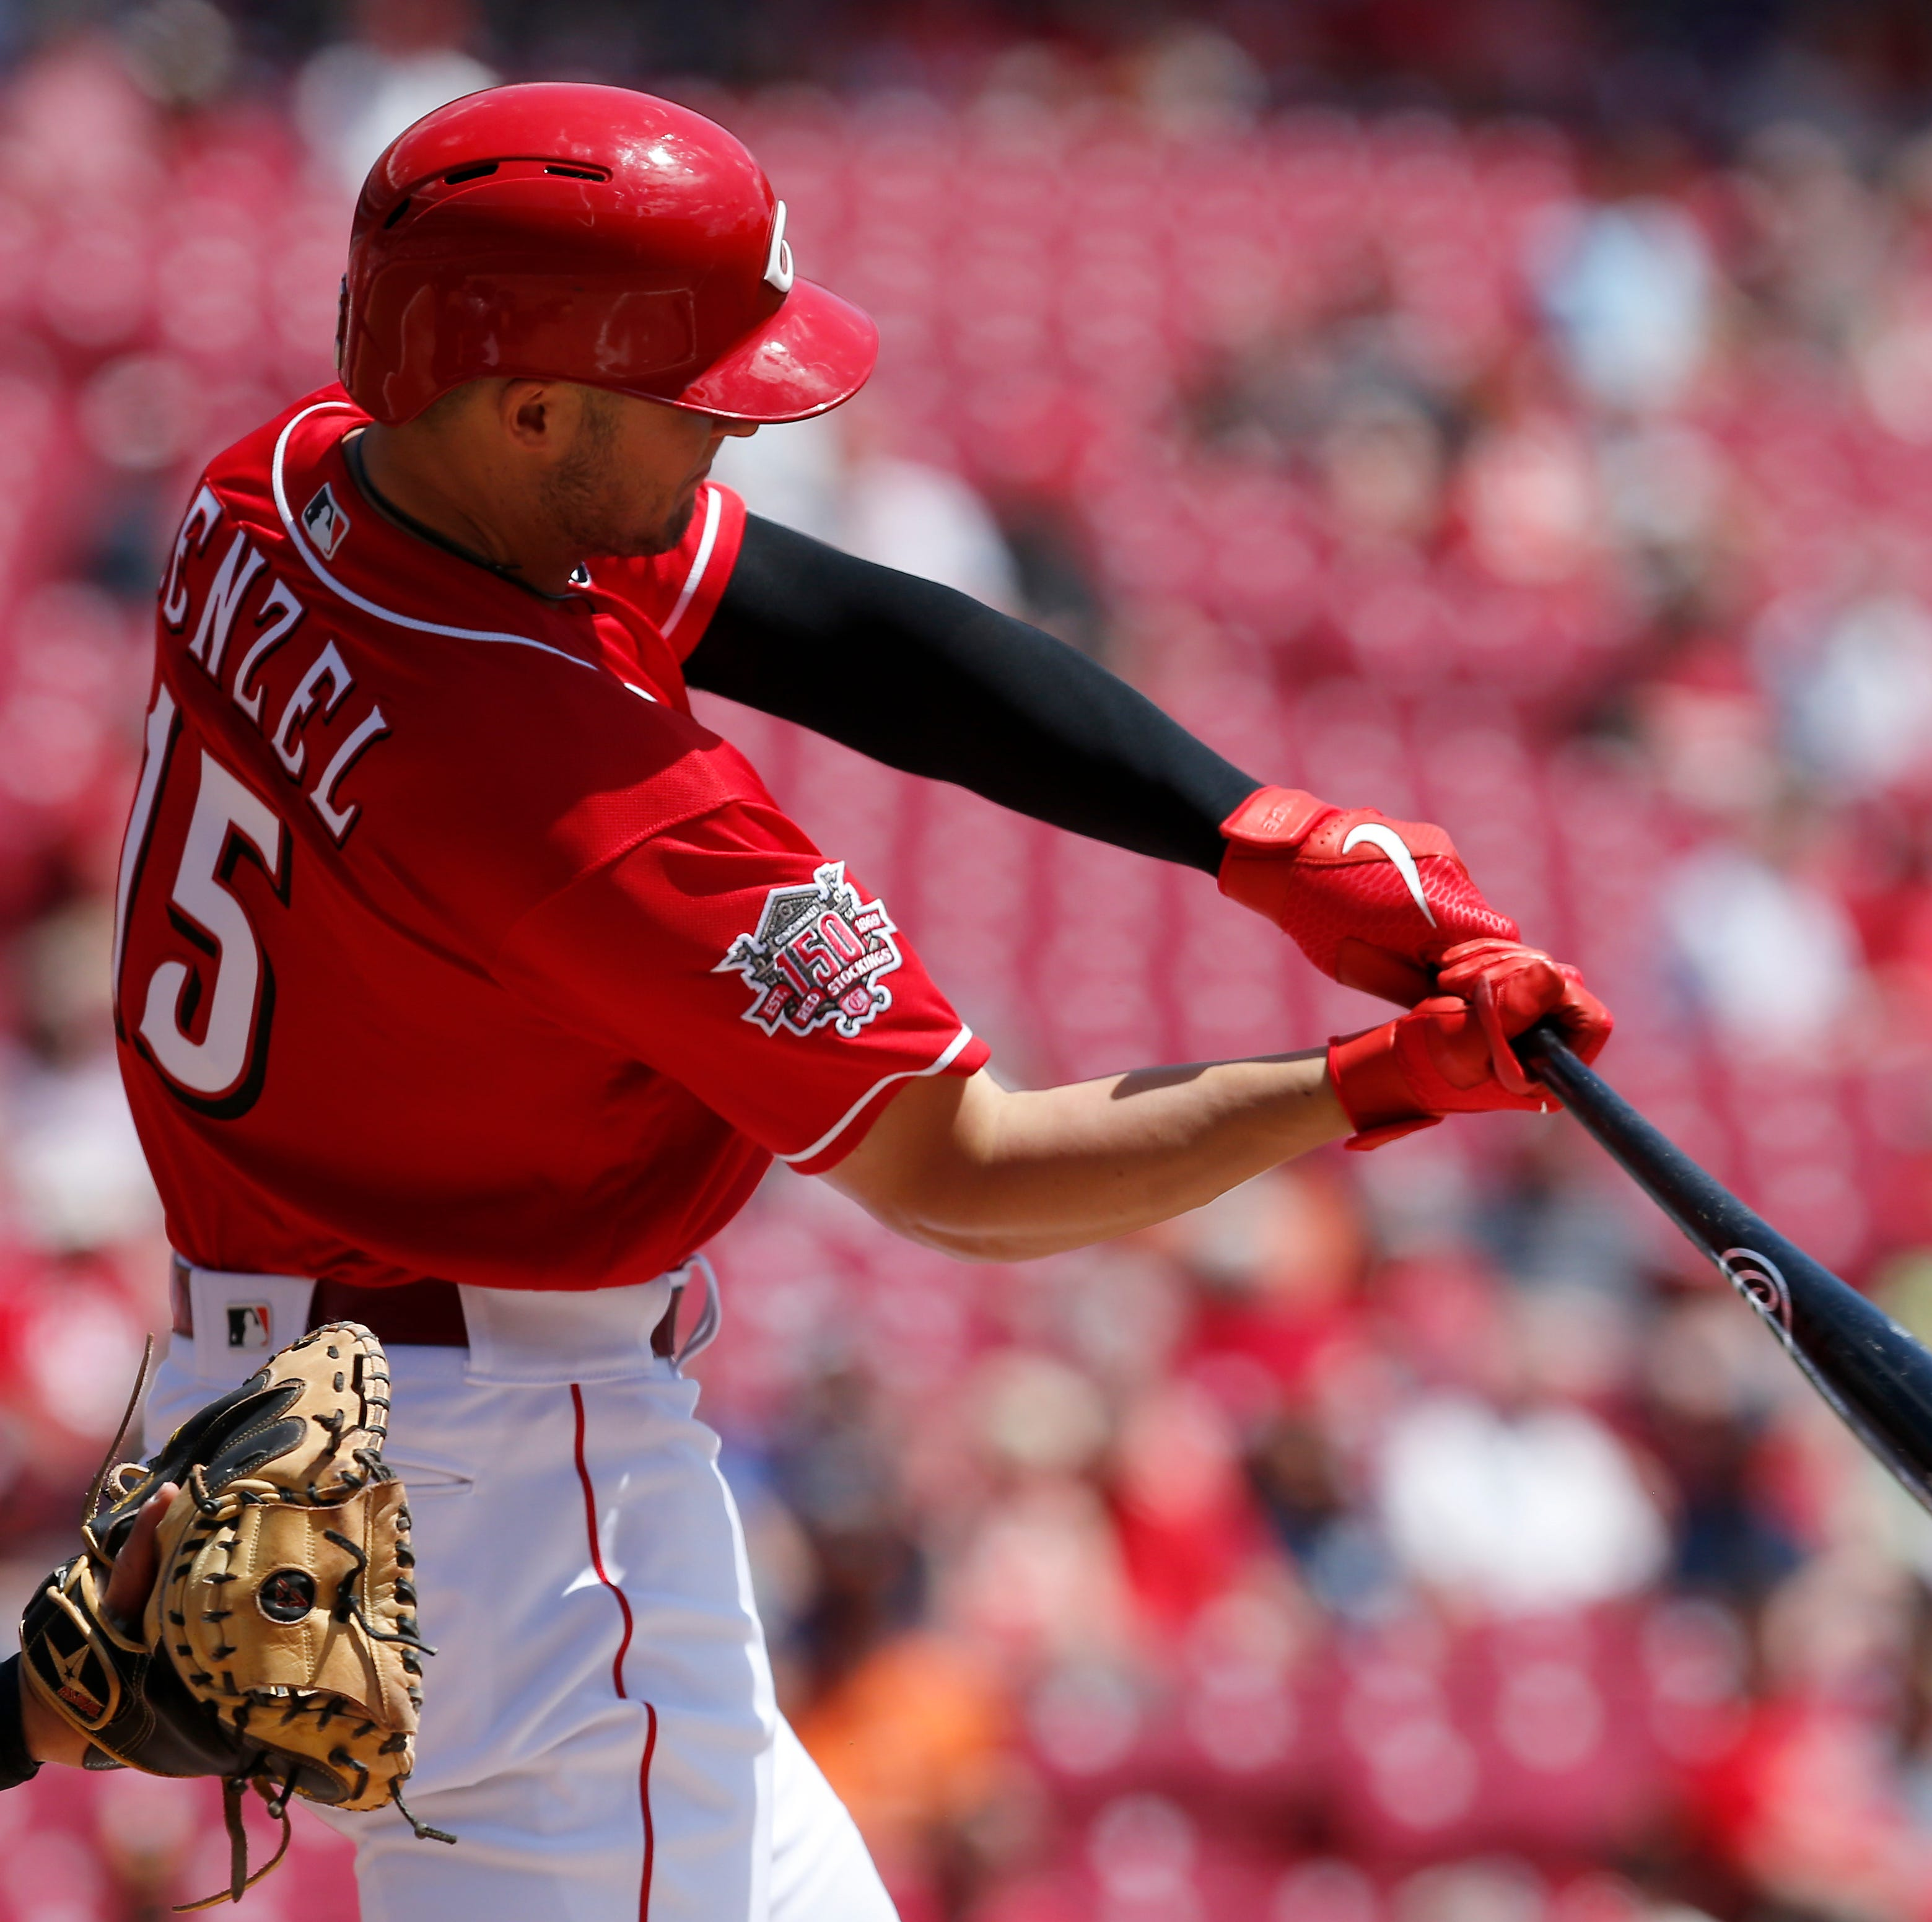 Senzel-sational end for the Cincinnati Reds in a 12-4 win over the San Francisco Giants